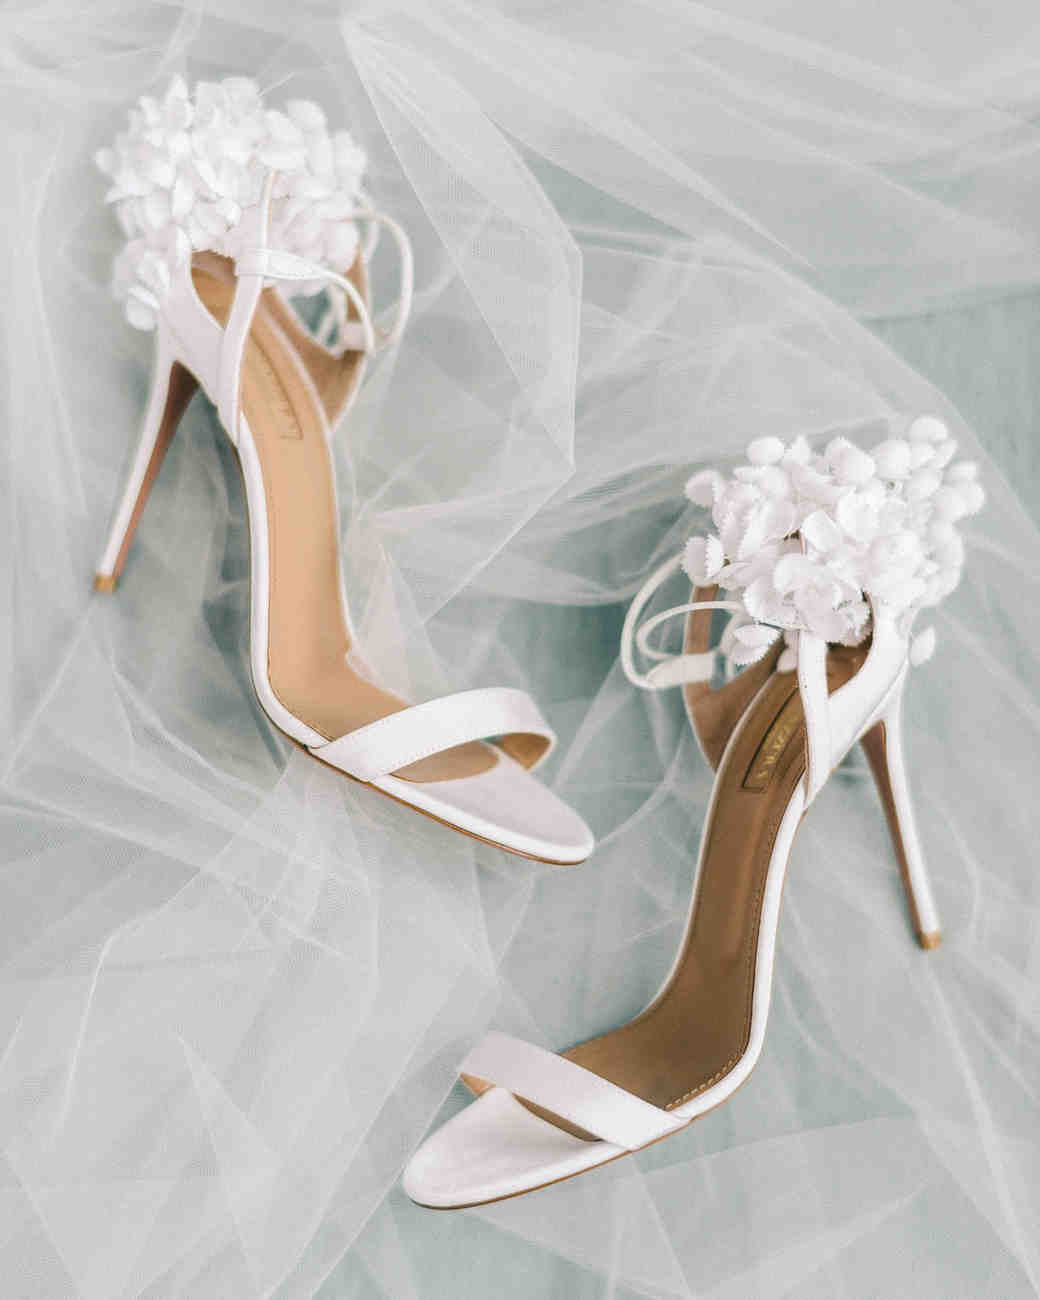 abby marcus wedding shoes 136